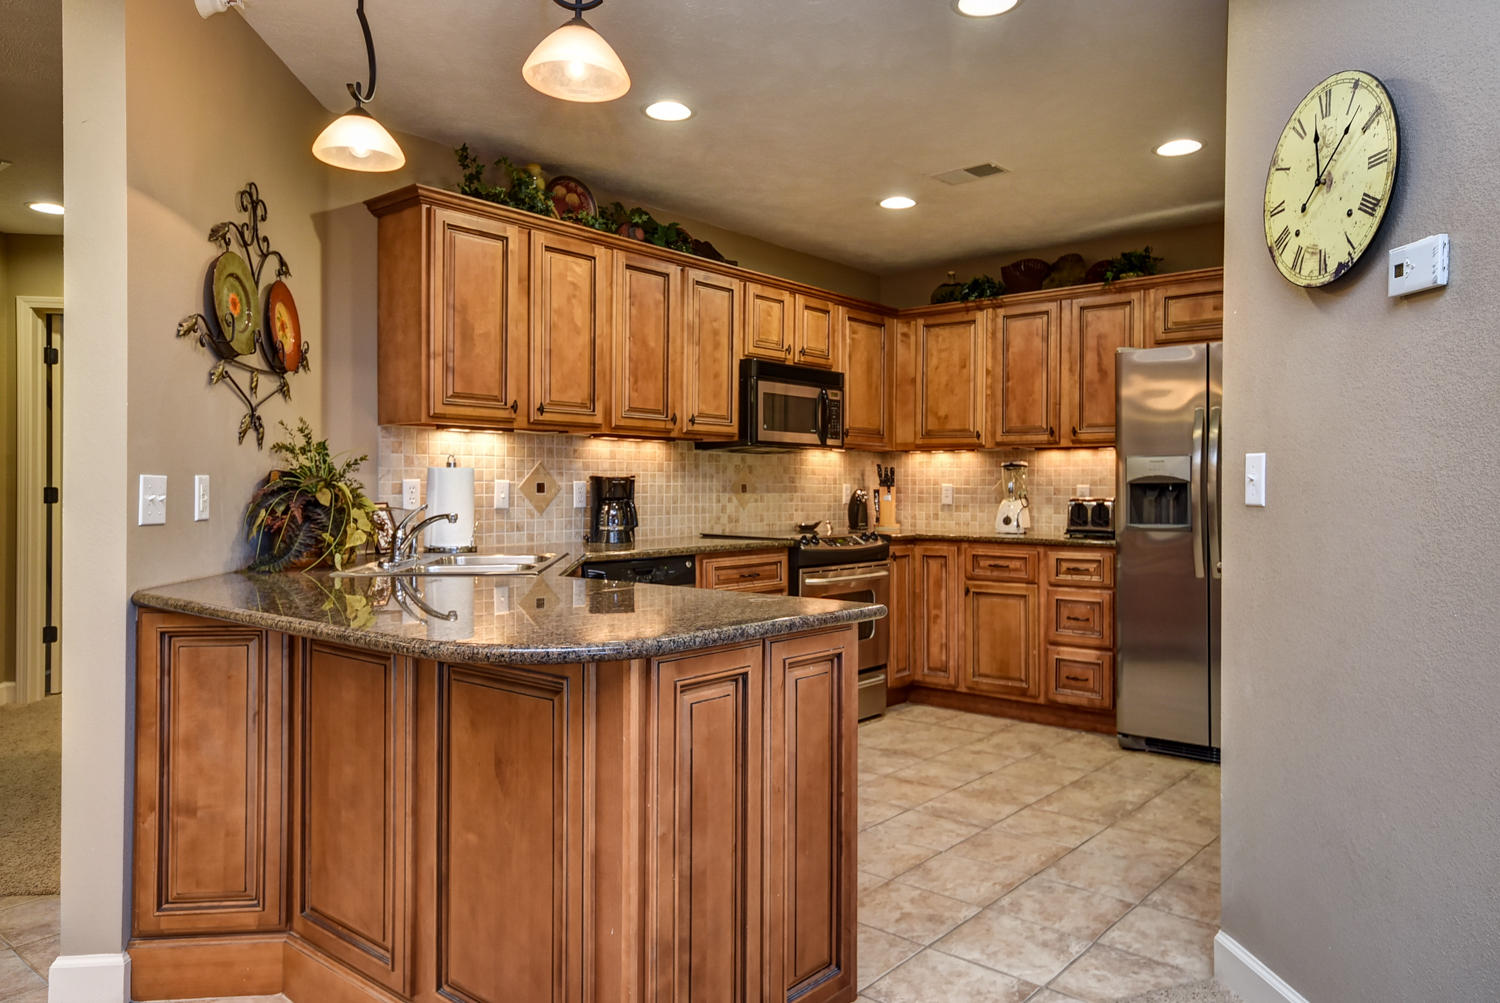 250 Lakewood Drive #5303 Hollister, MO 65672